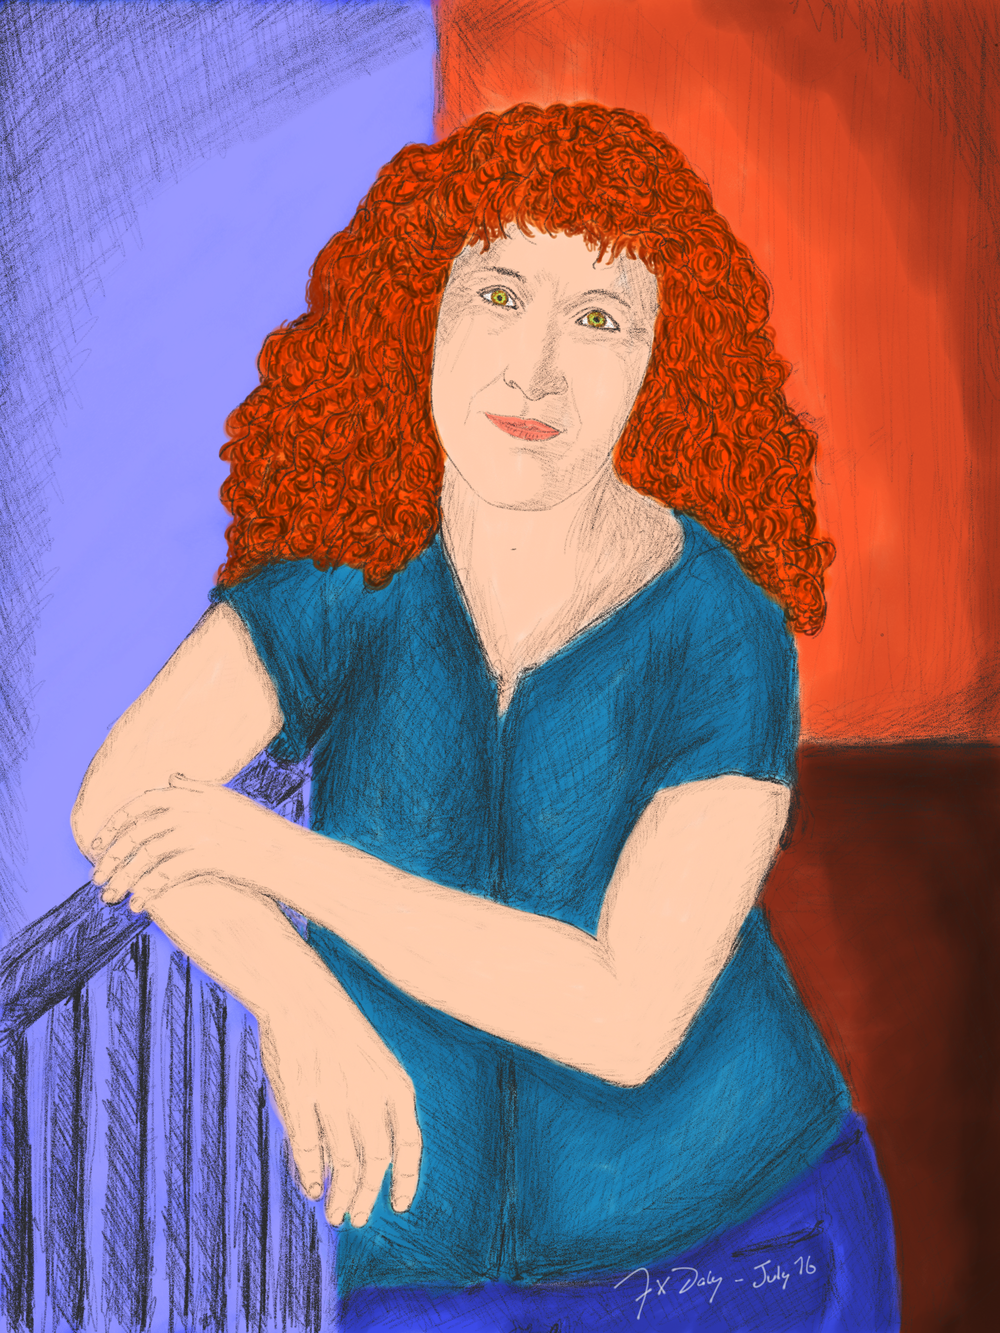 Girl with the Curly Red Hair